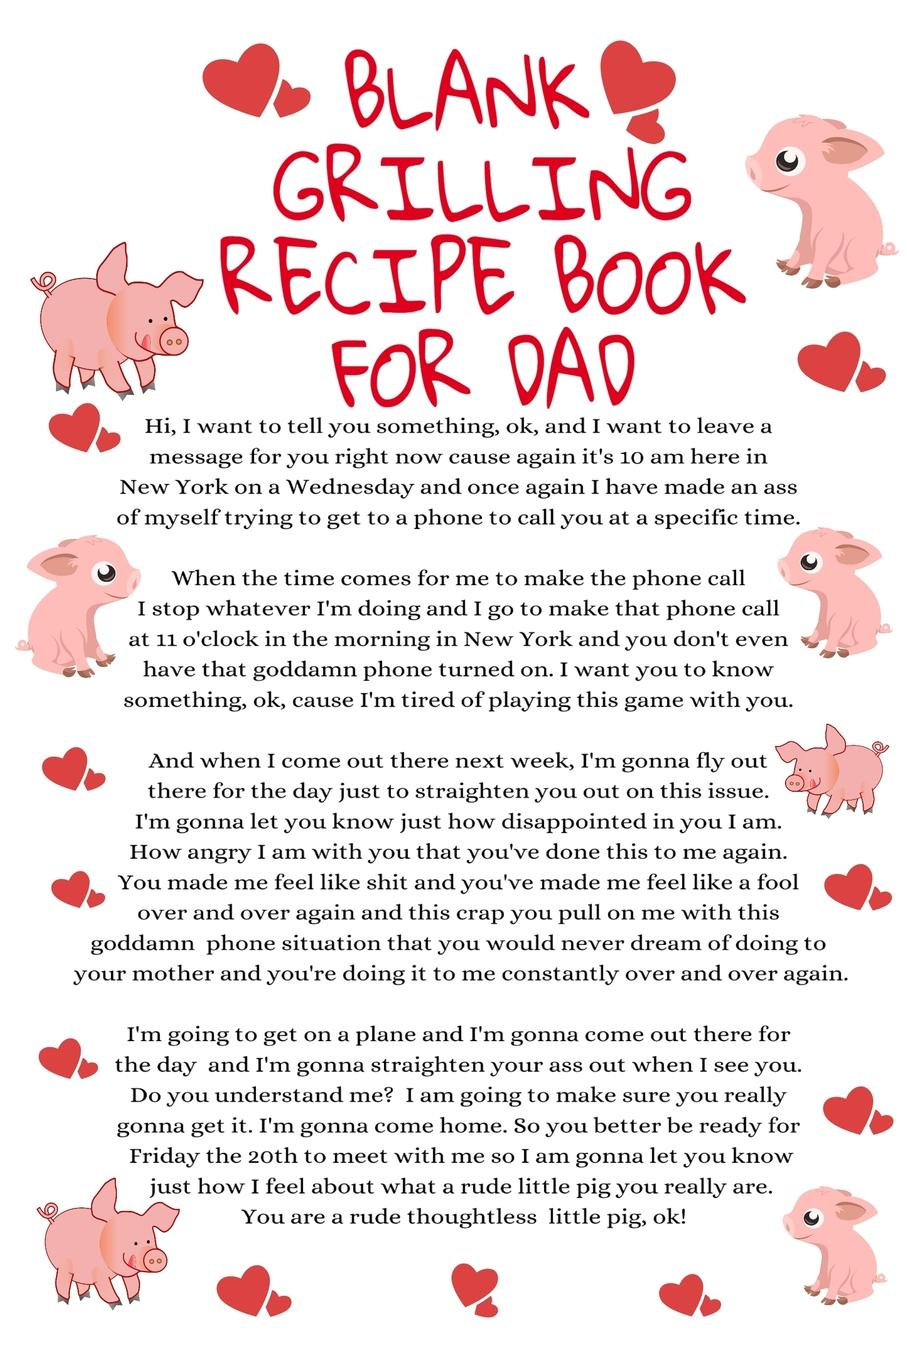 Jennifer Wellington Blank Grilliing Recipe Book For Dad. Funny Father Cooking Notepad Book - Parody Dad Gift Journal To Write Your Favorite Grill Recipes For Fathers With Temper, 6x9 Inches Paper With Black Lines, 120 Pages Ruled Diary For Dad, Boyfriend, Husband, ... journal jungle publishing my recipe book 100 recipe pages conversion tables quotes and more make your own cookbook using this blank recipe book 8 x 10 inches pink purple and orange